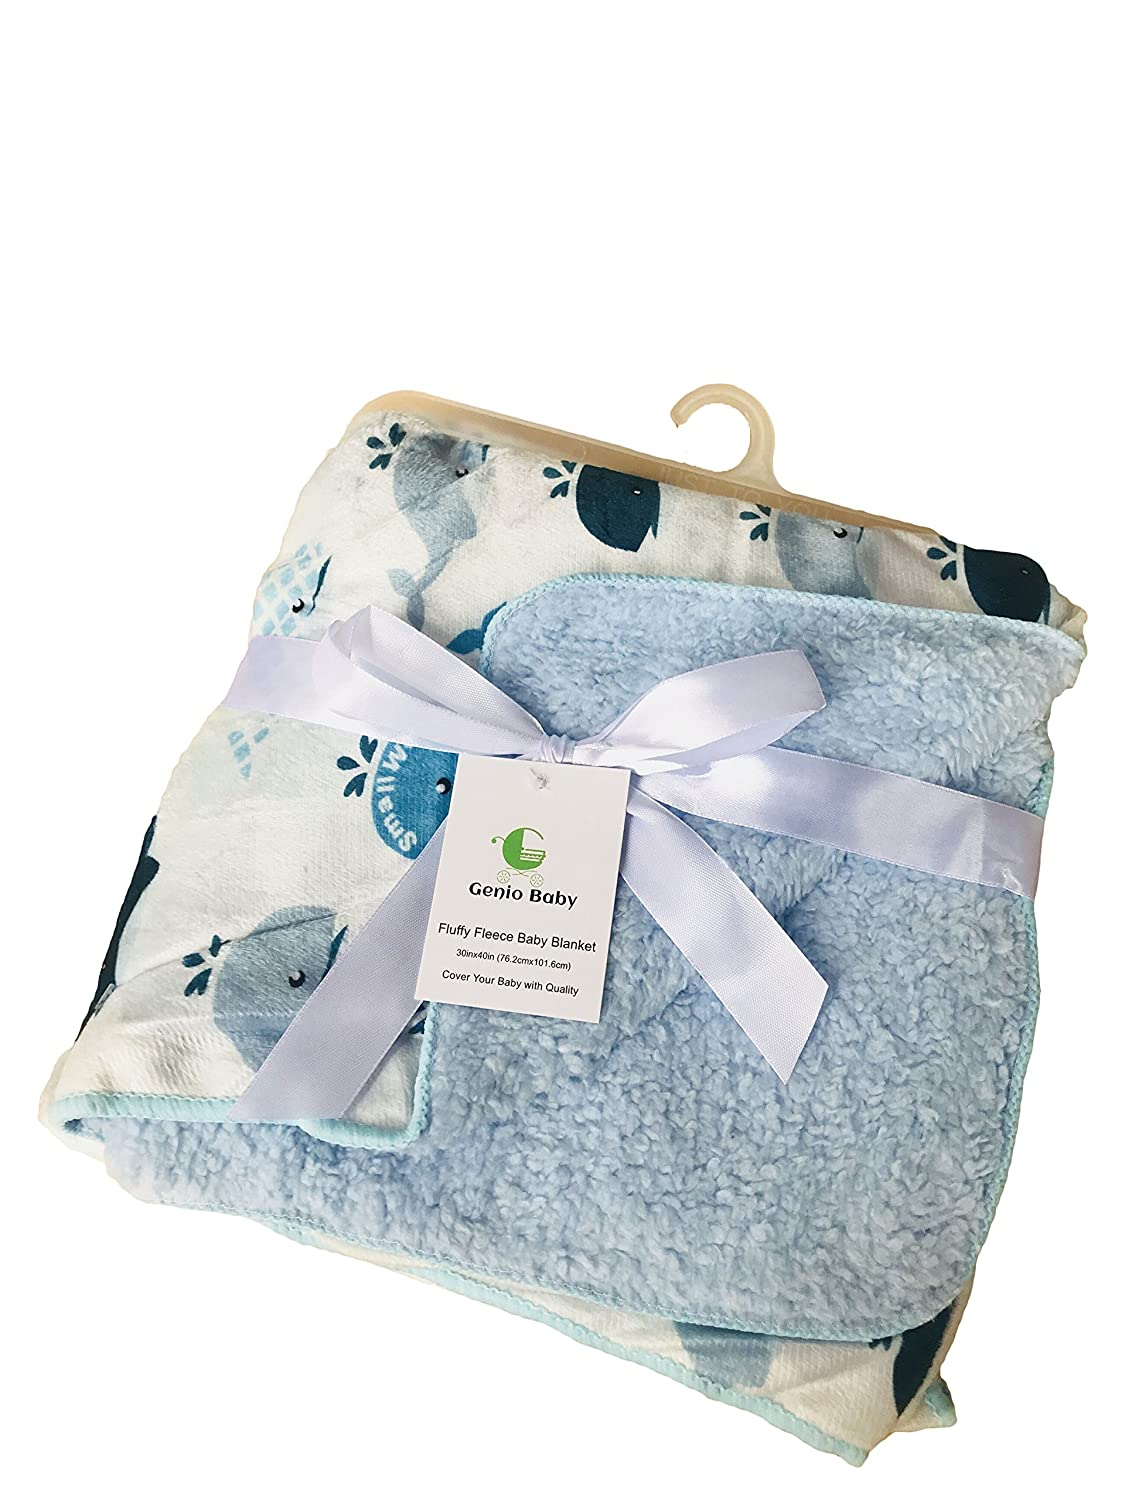 Perfect for Swaddling and Strolling Genio Baby Sherpa Fleece Baby Blanket Unisex 30 x 40 Soft Fluffy for Boys and Girls